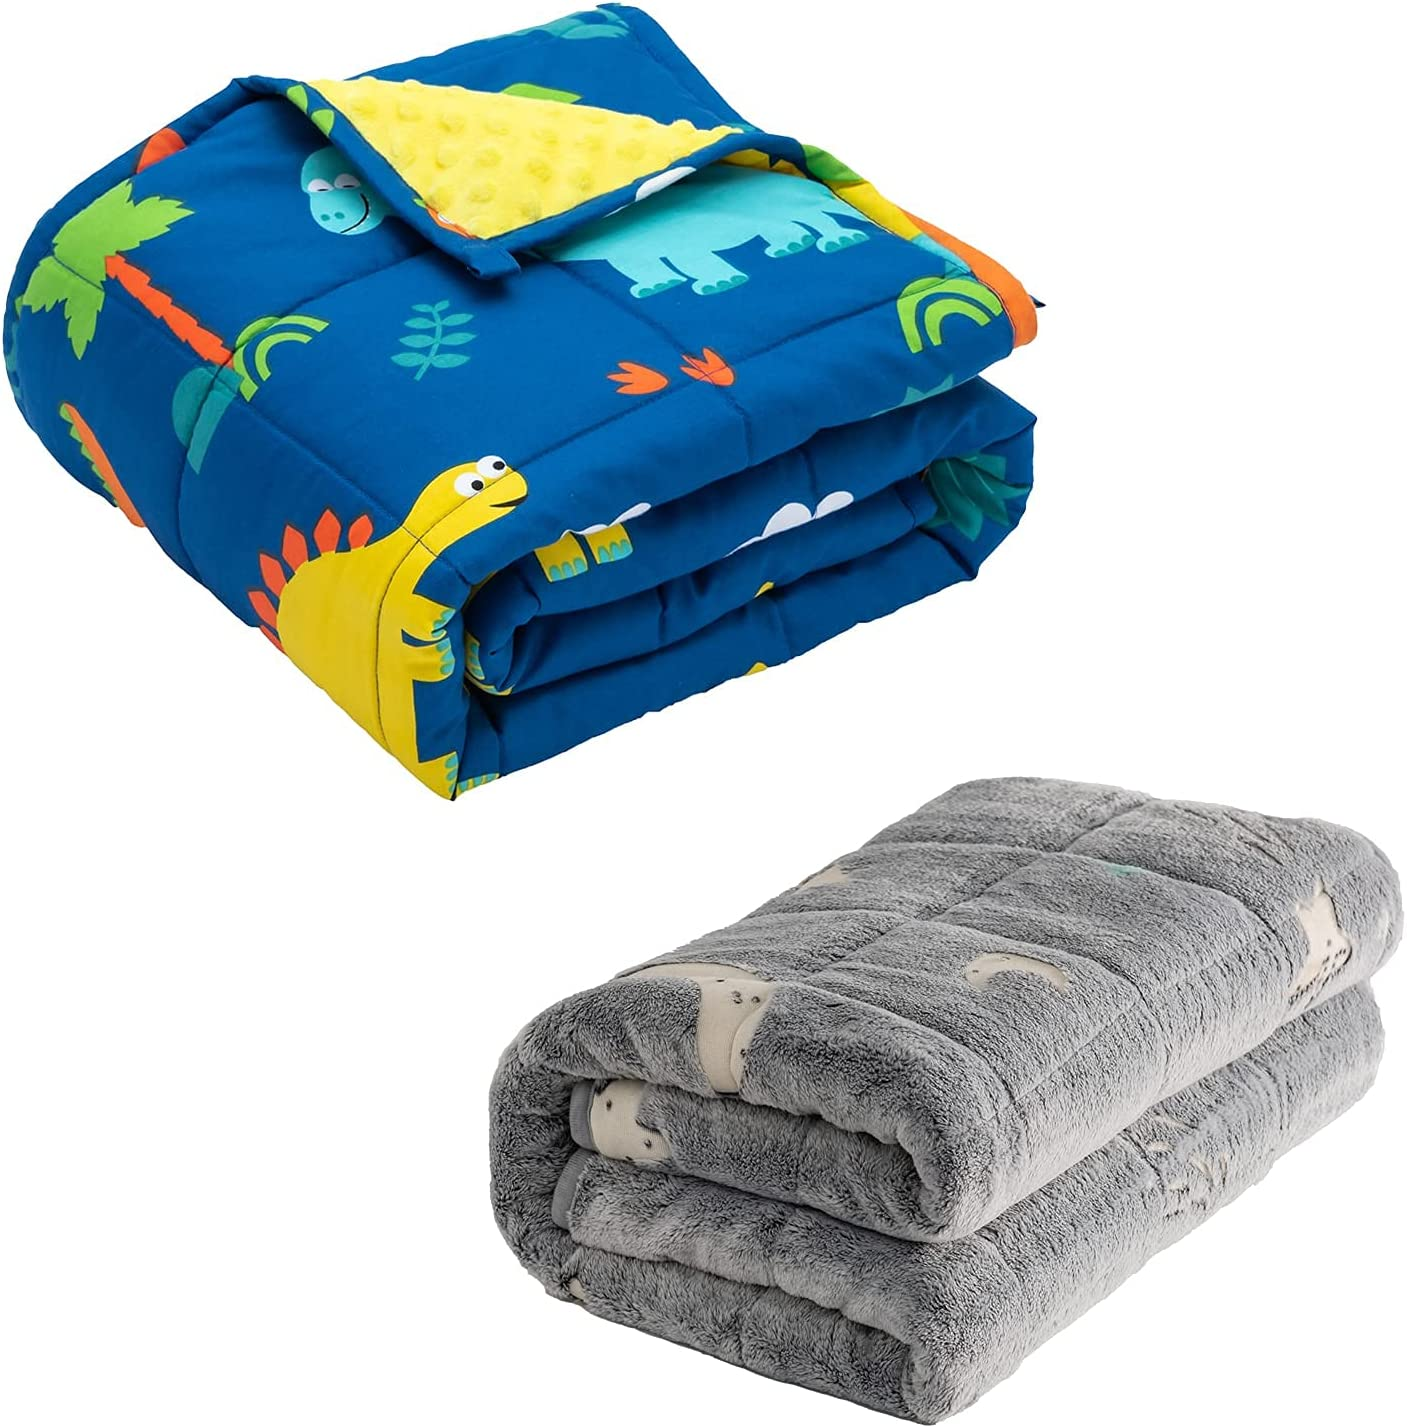 Kids Weighted Blanket 3 lbs Cozy All items free shipping Minky Cotton Fleece Recommended with Sided